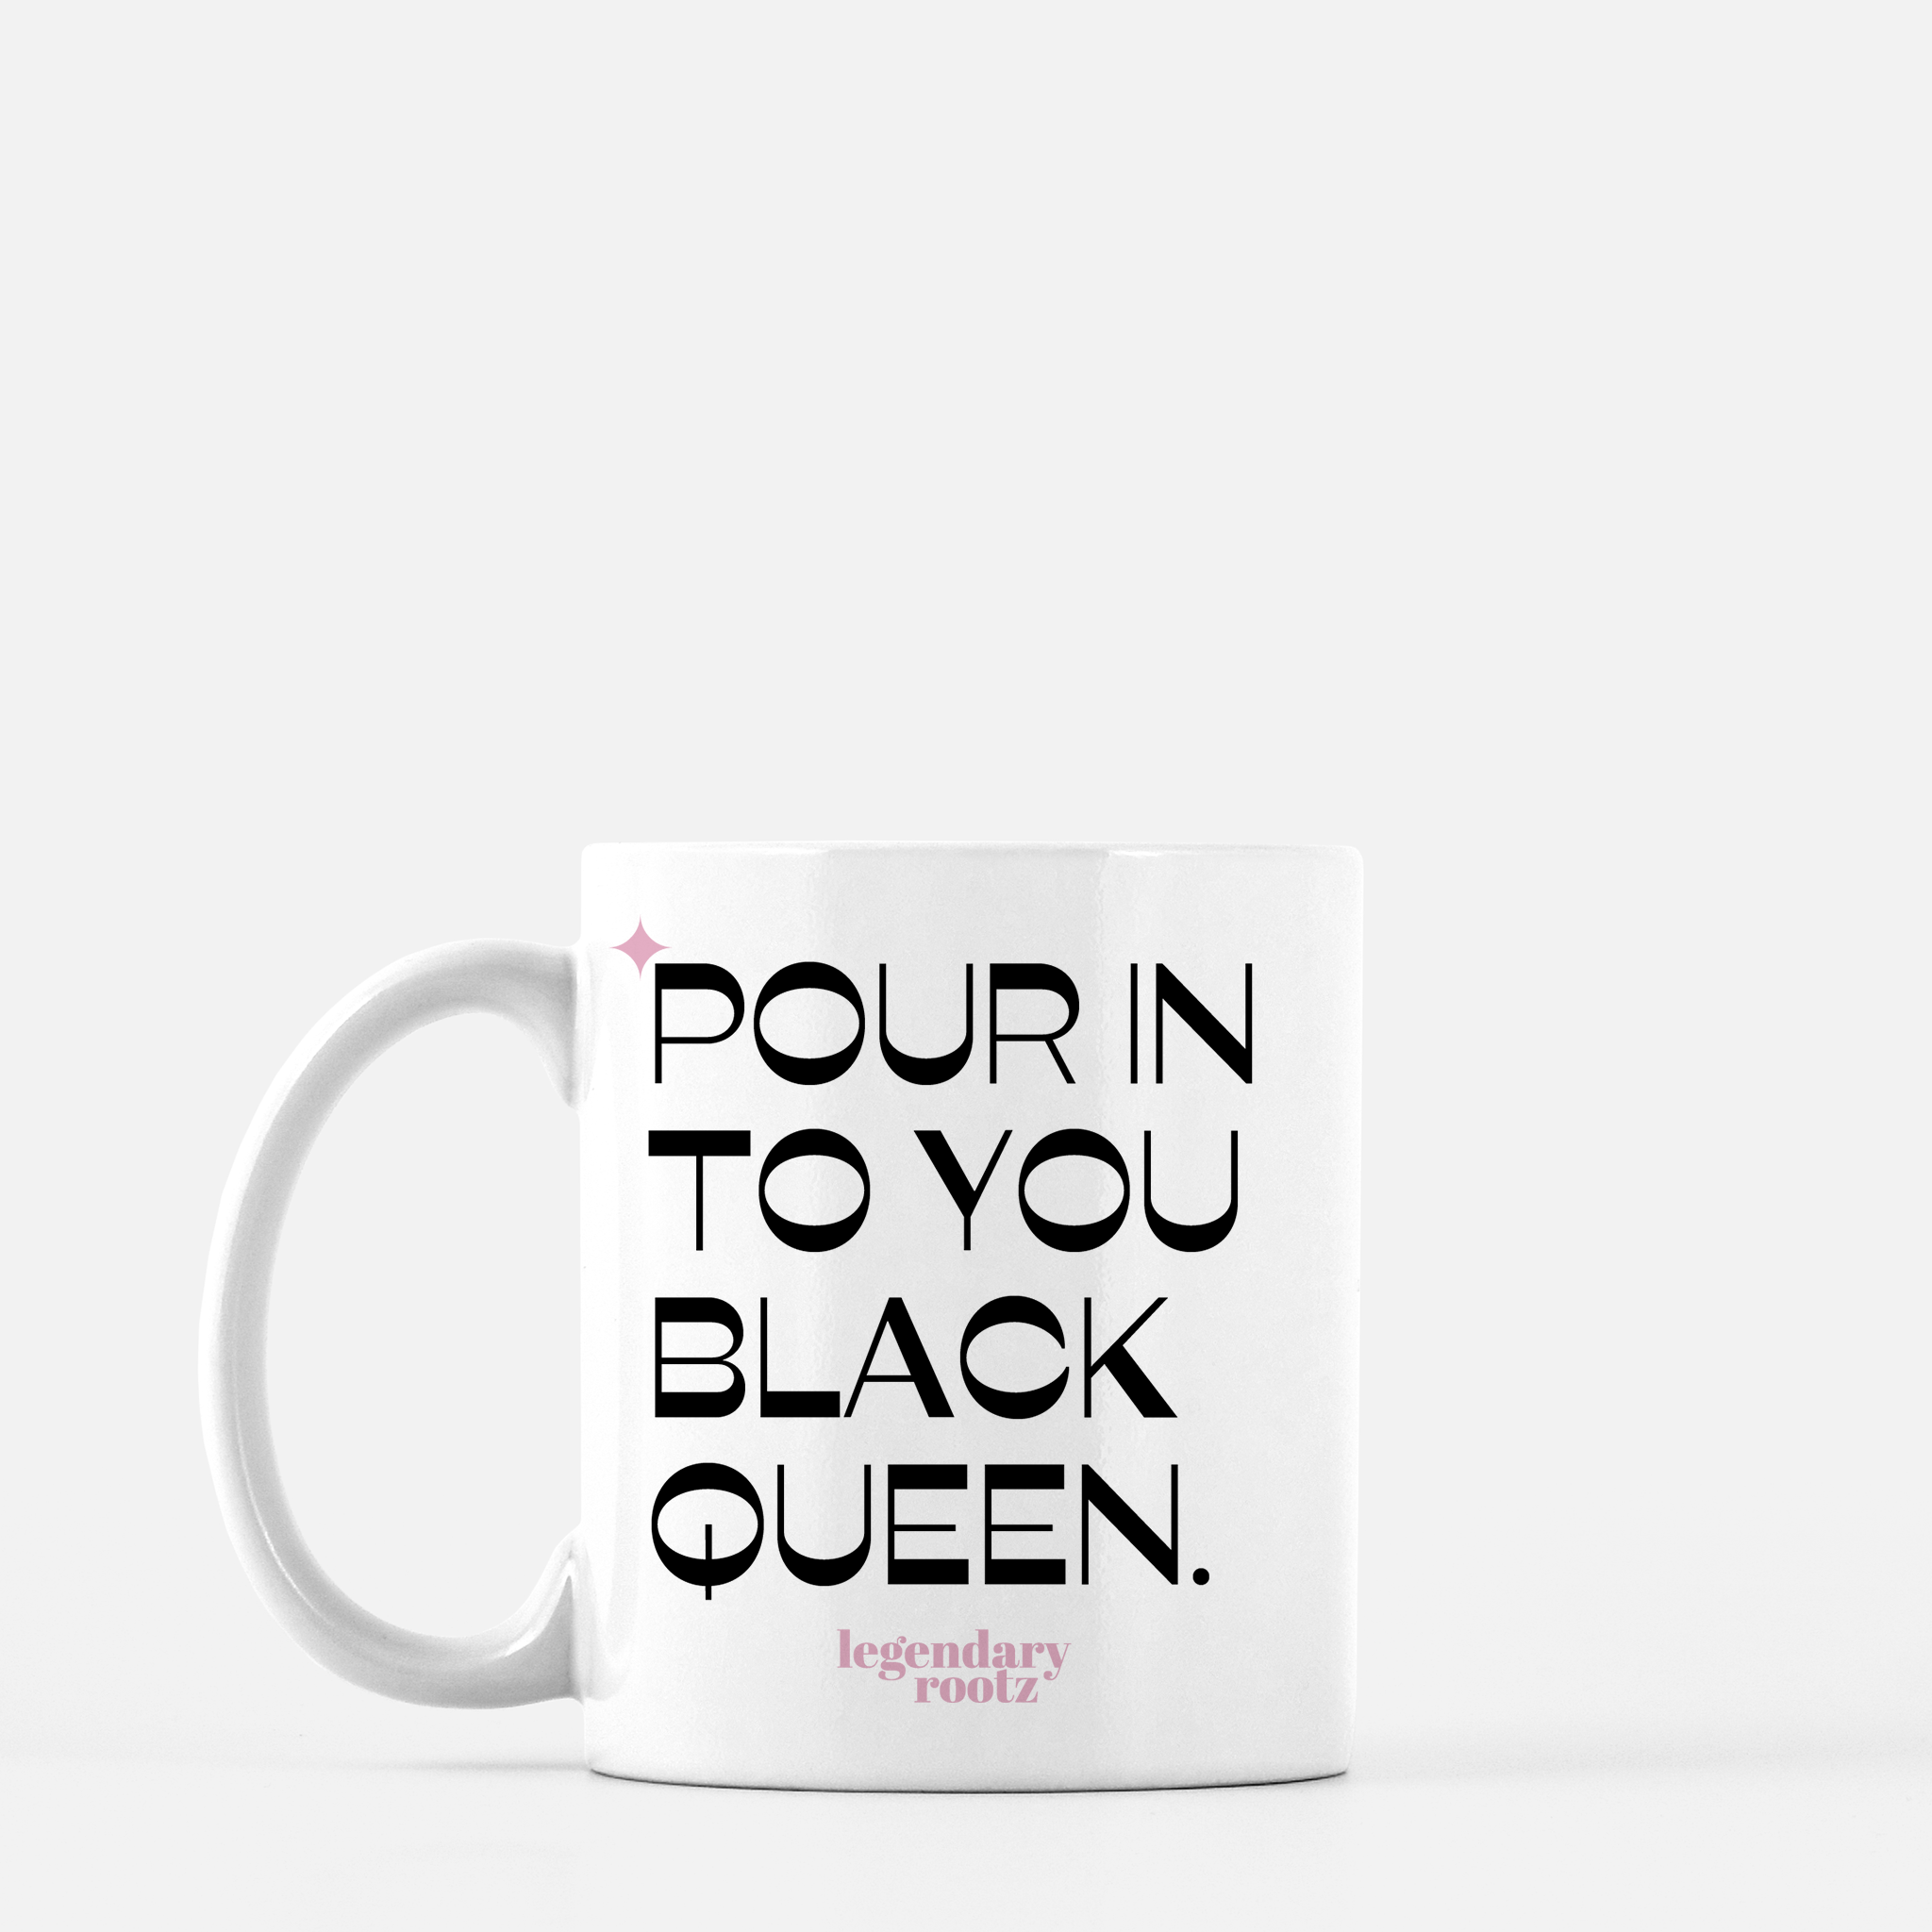 Pour In To You Black Queen | Mug - Legendary Rootz